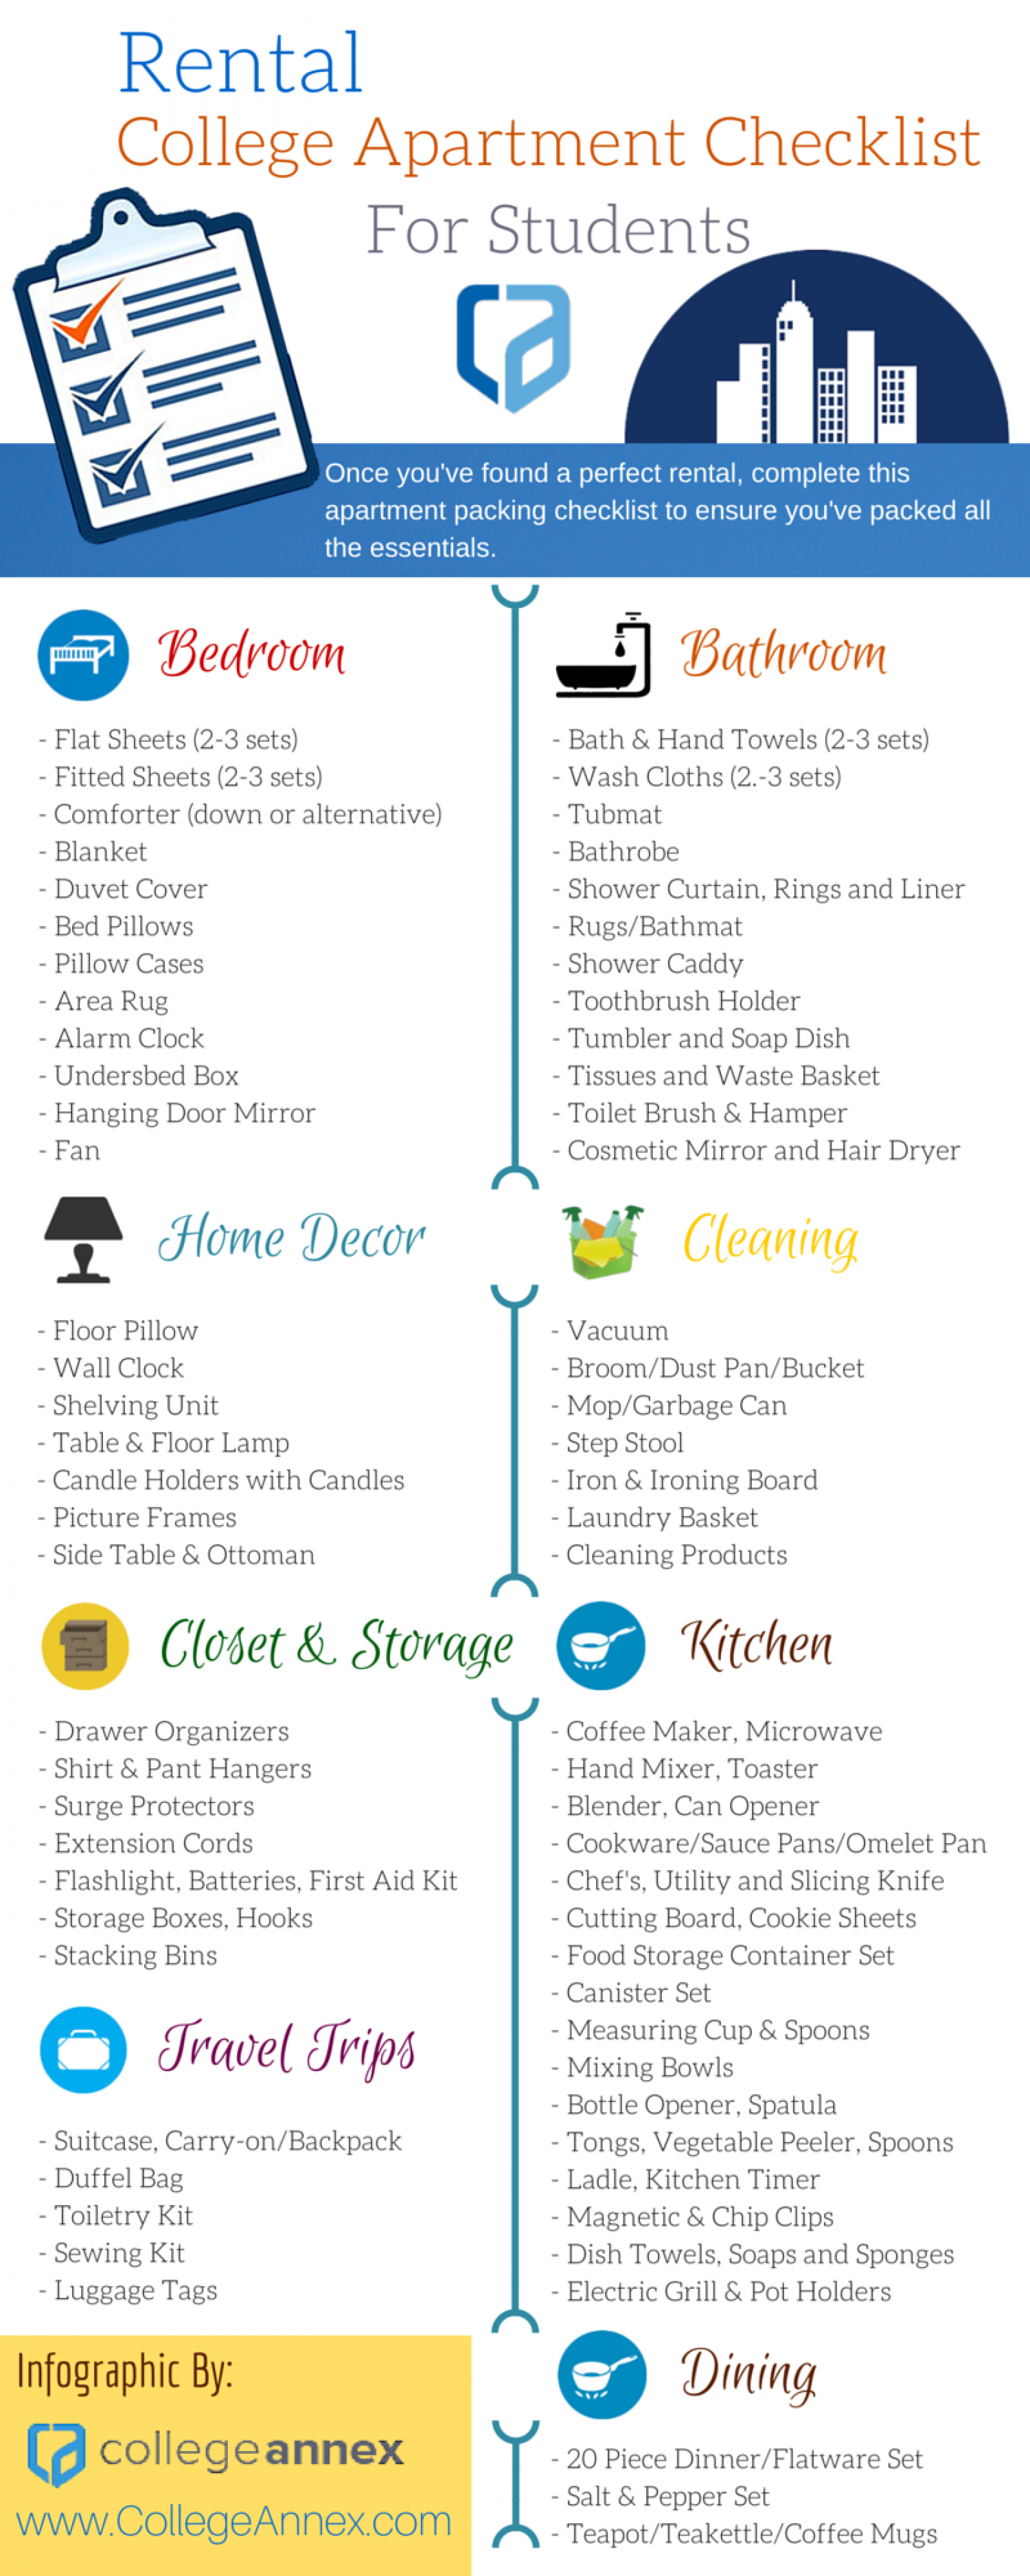 College Apartment Checklist For Students | Visual.ly